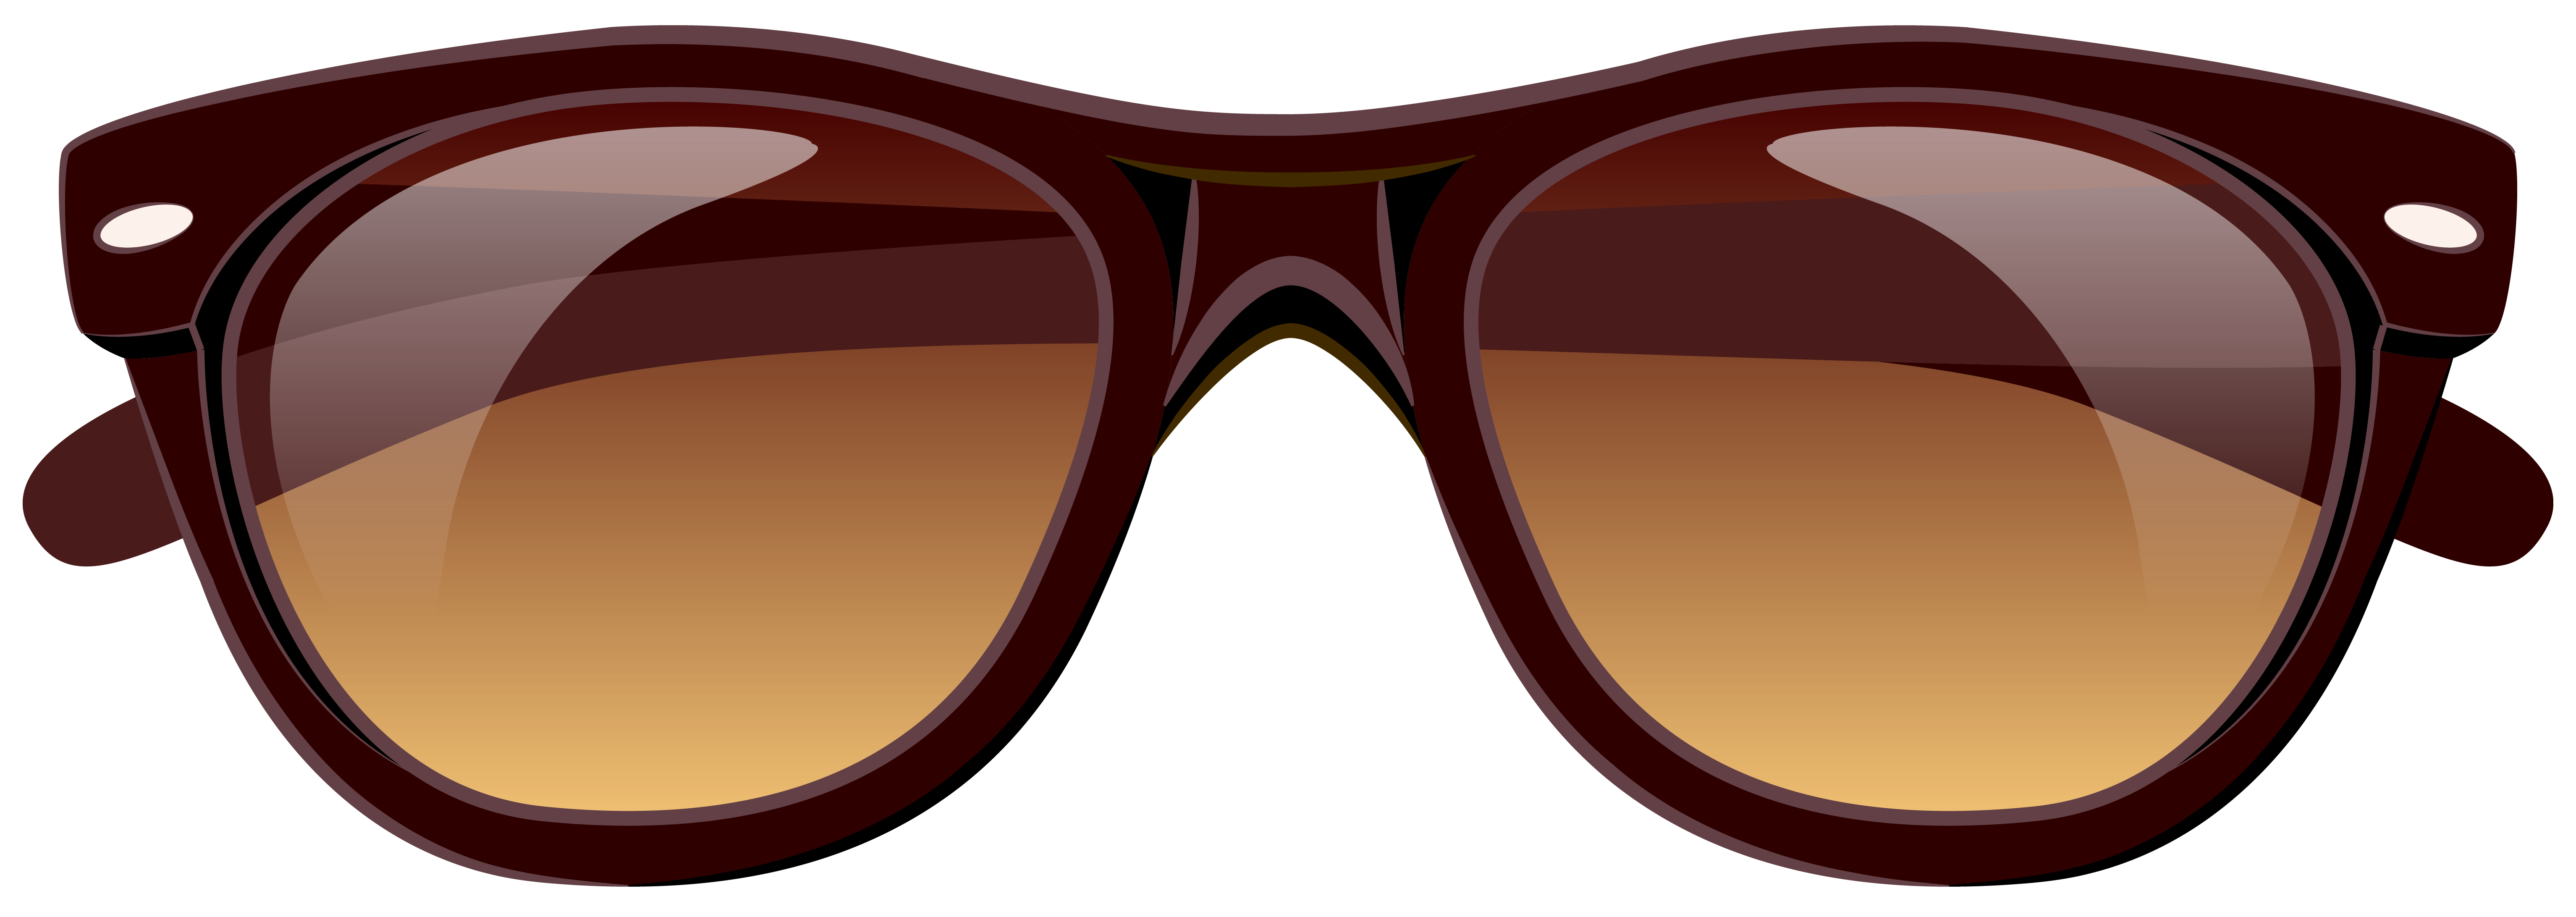 Brown sunglasses clipart picture gallery yopriceville high png